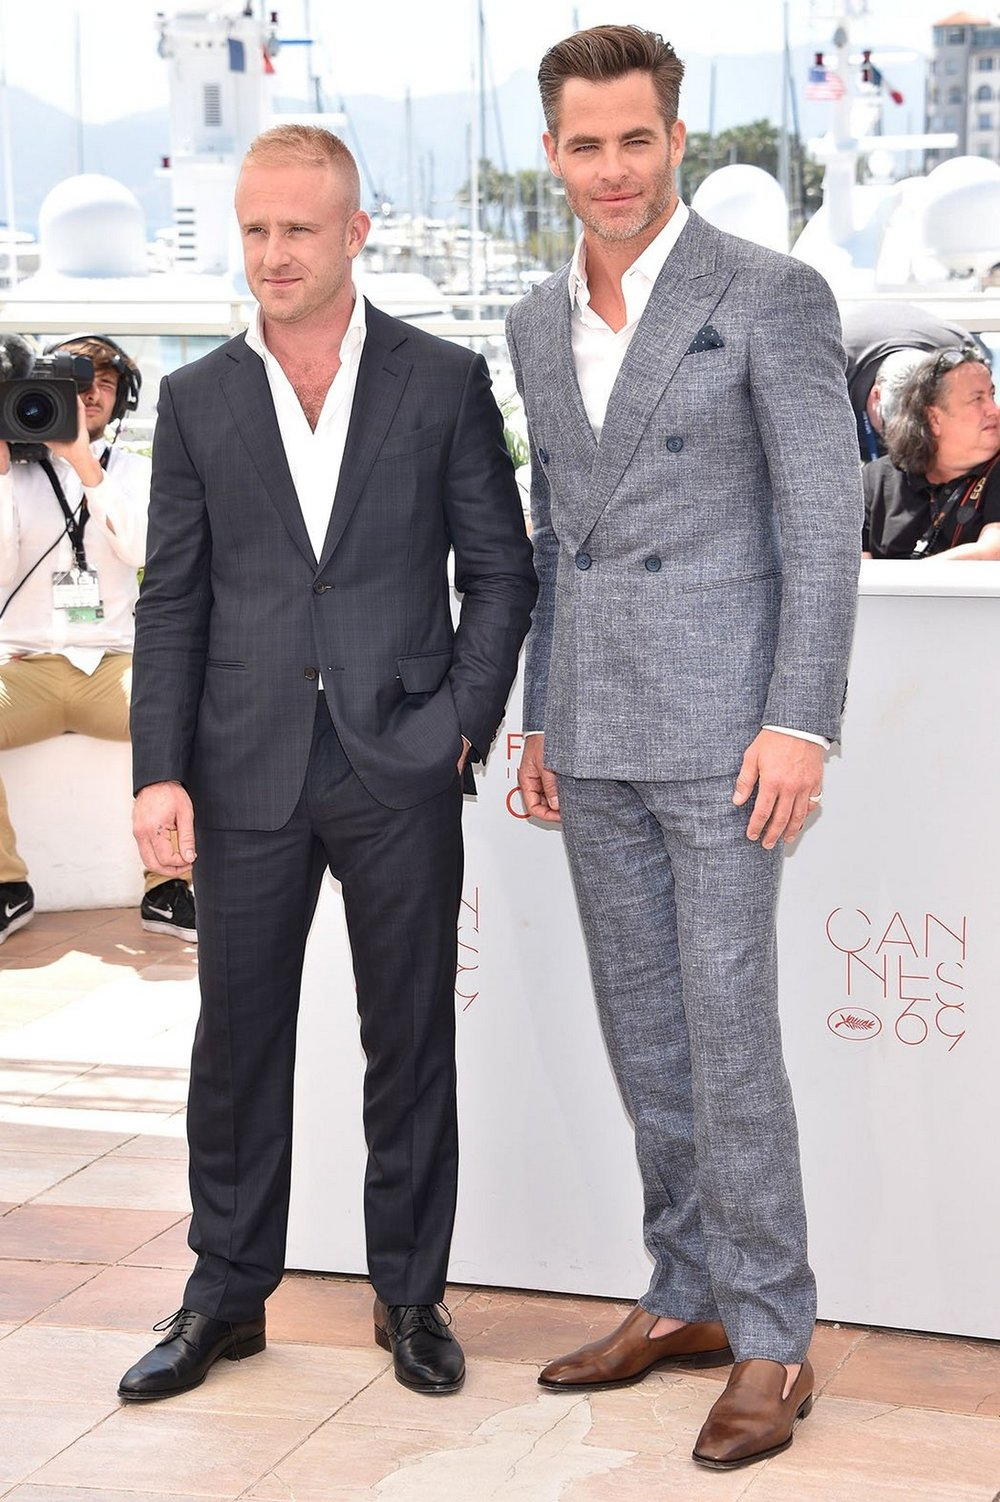 The-best-dressed-men-at-Cannes-Film-Festival-2016.jpg